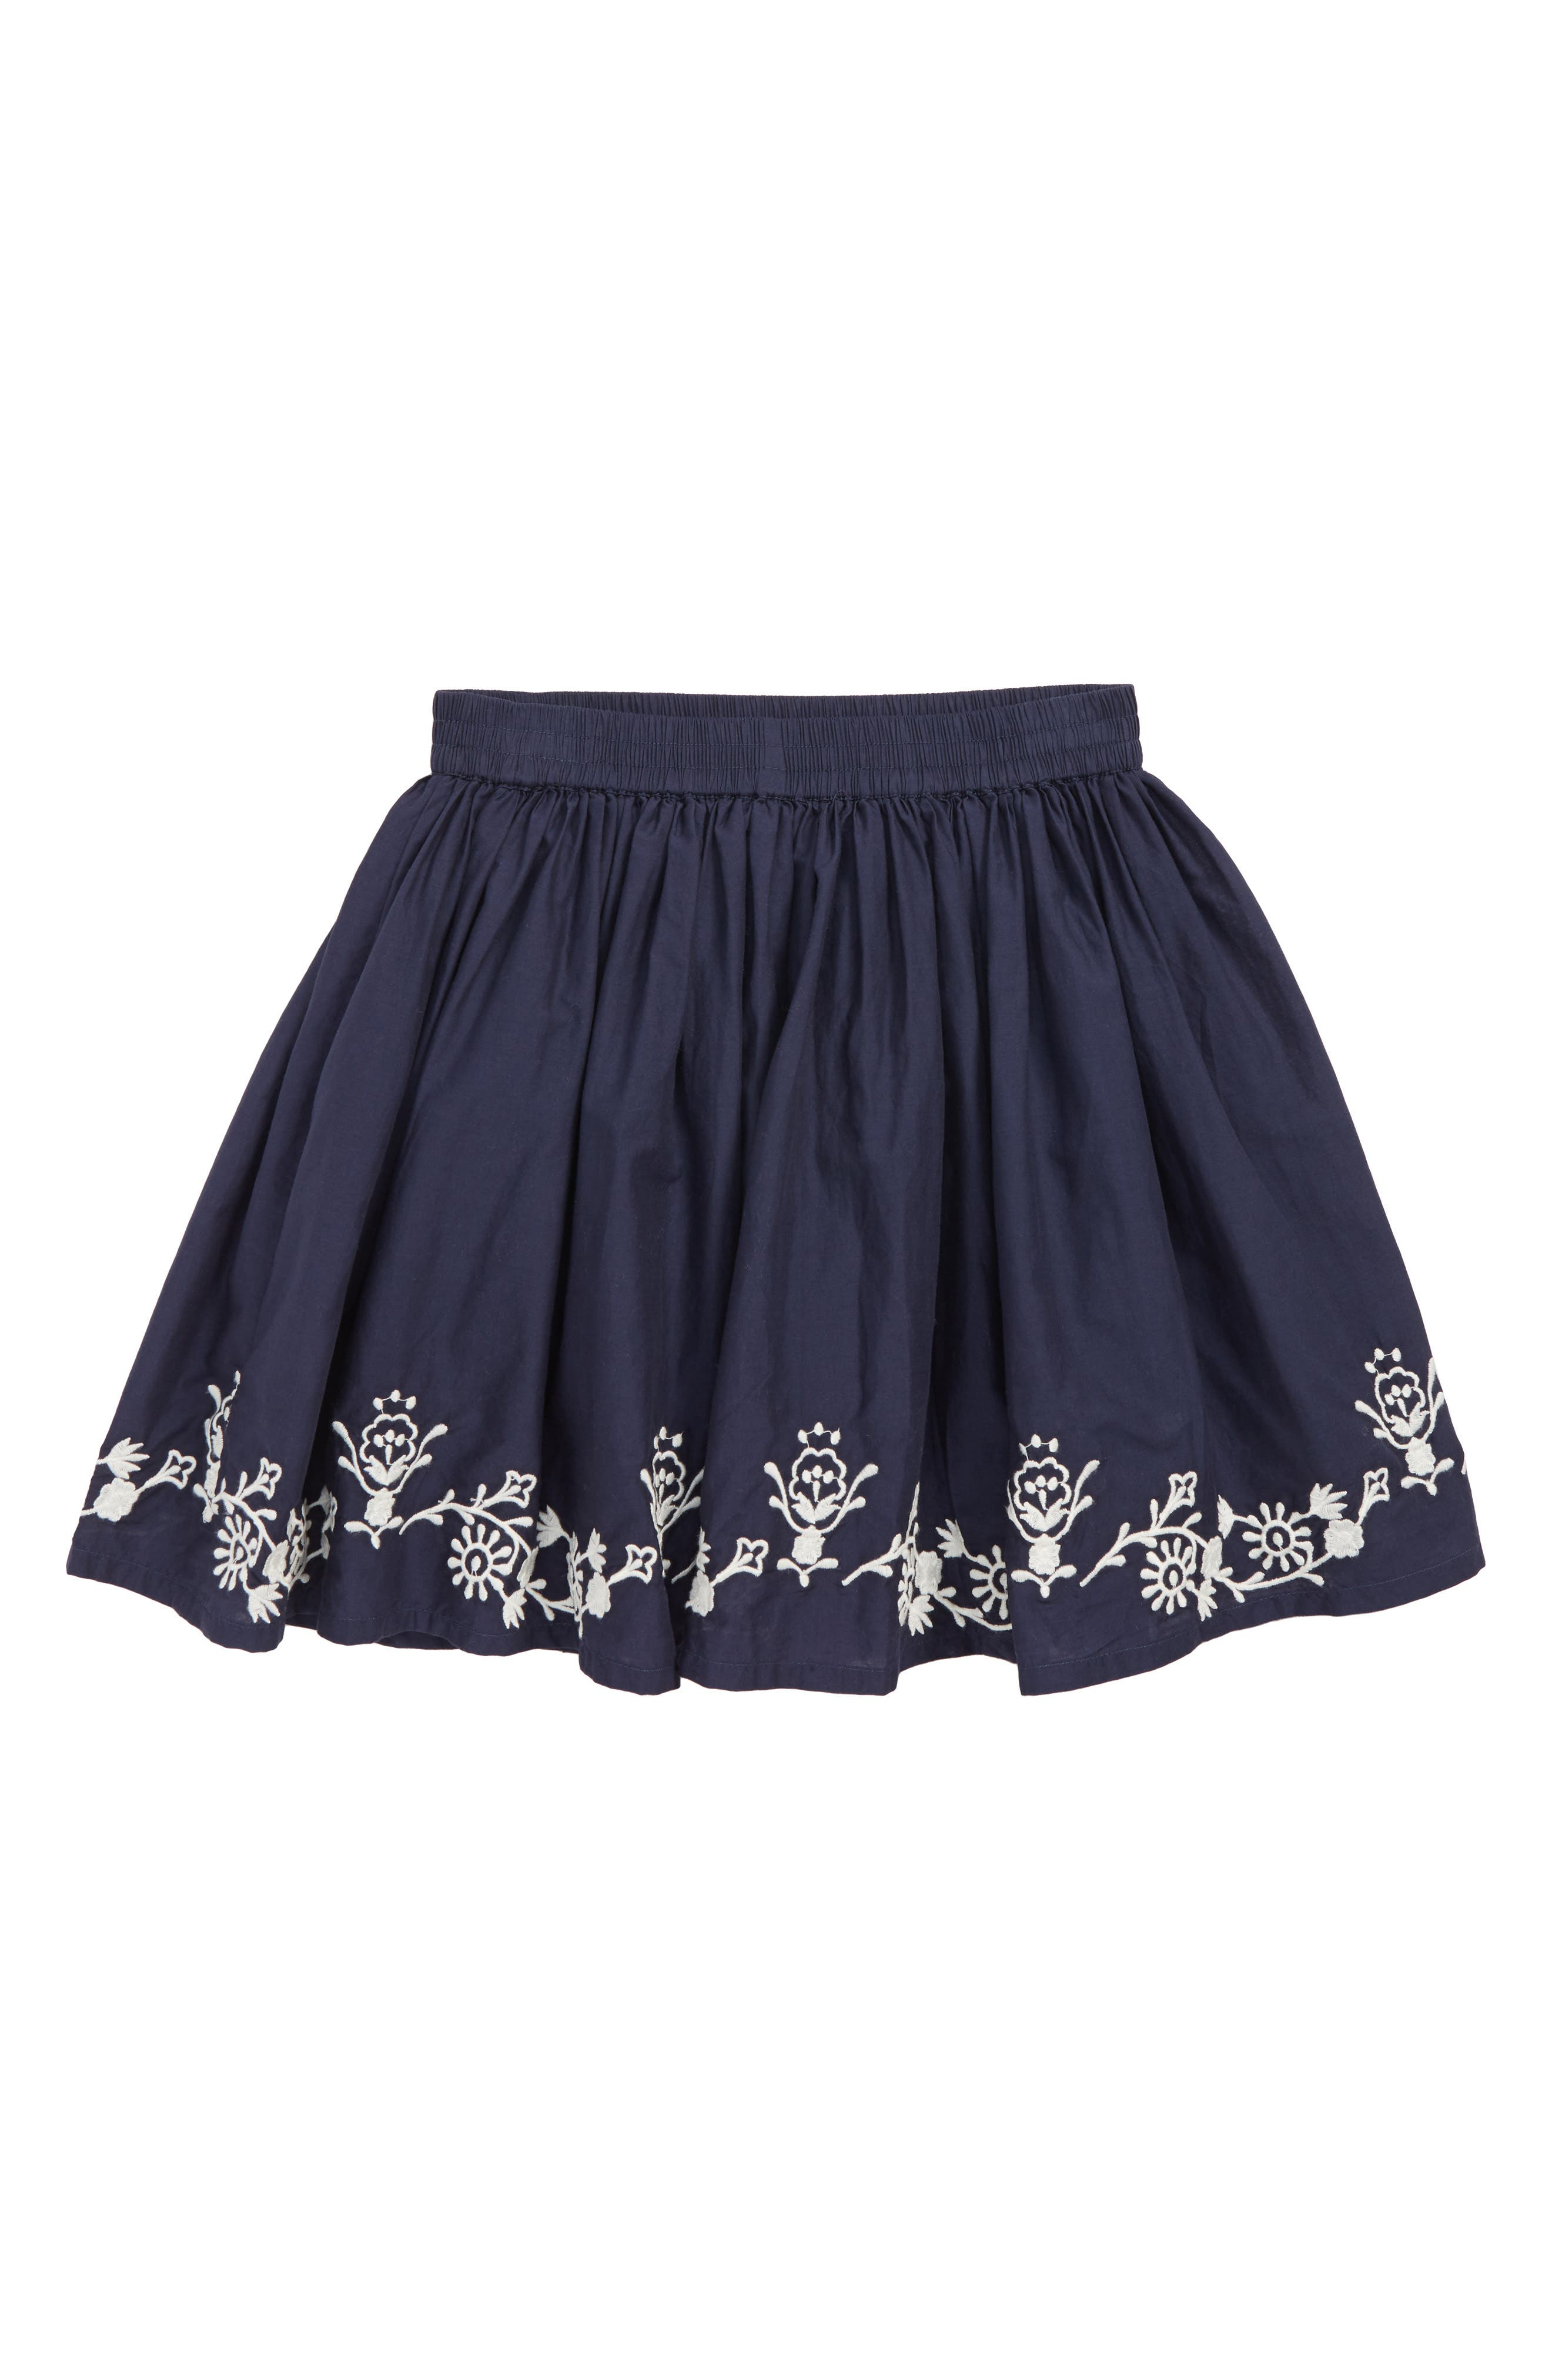 Embroidered Skirt,                         Main,                         color, 410